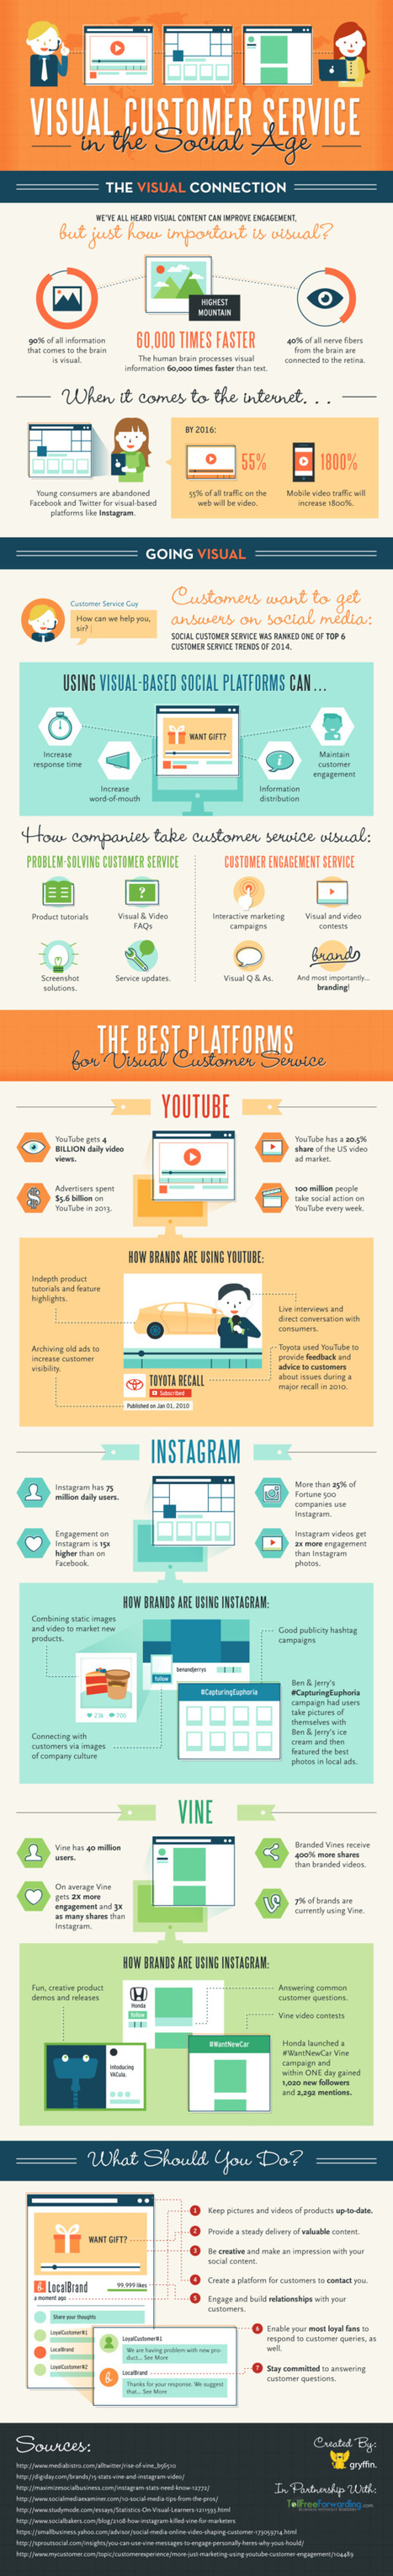 Why Visual Content Matters in the Social Age [INFOGRAPHIC] | Digital Strategy and Digital Marketing | Scoop.it